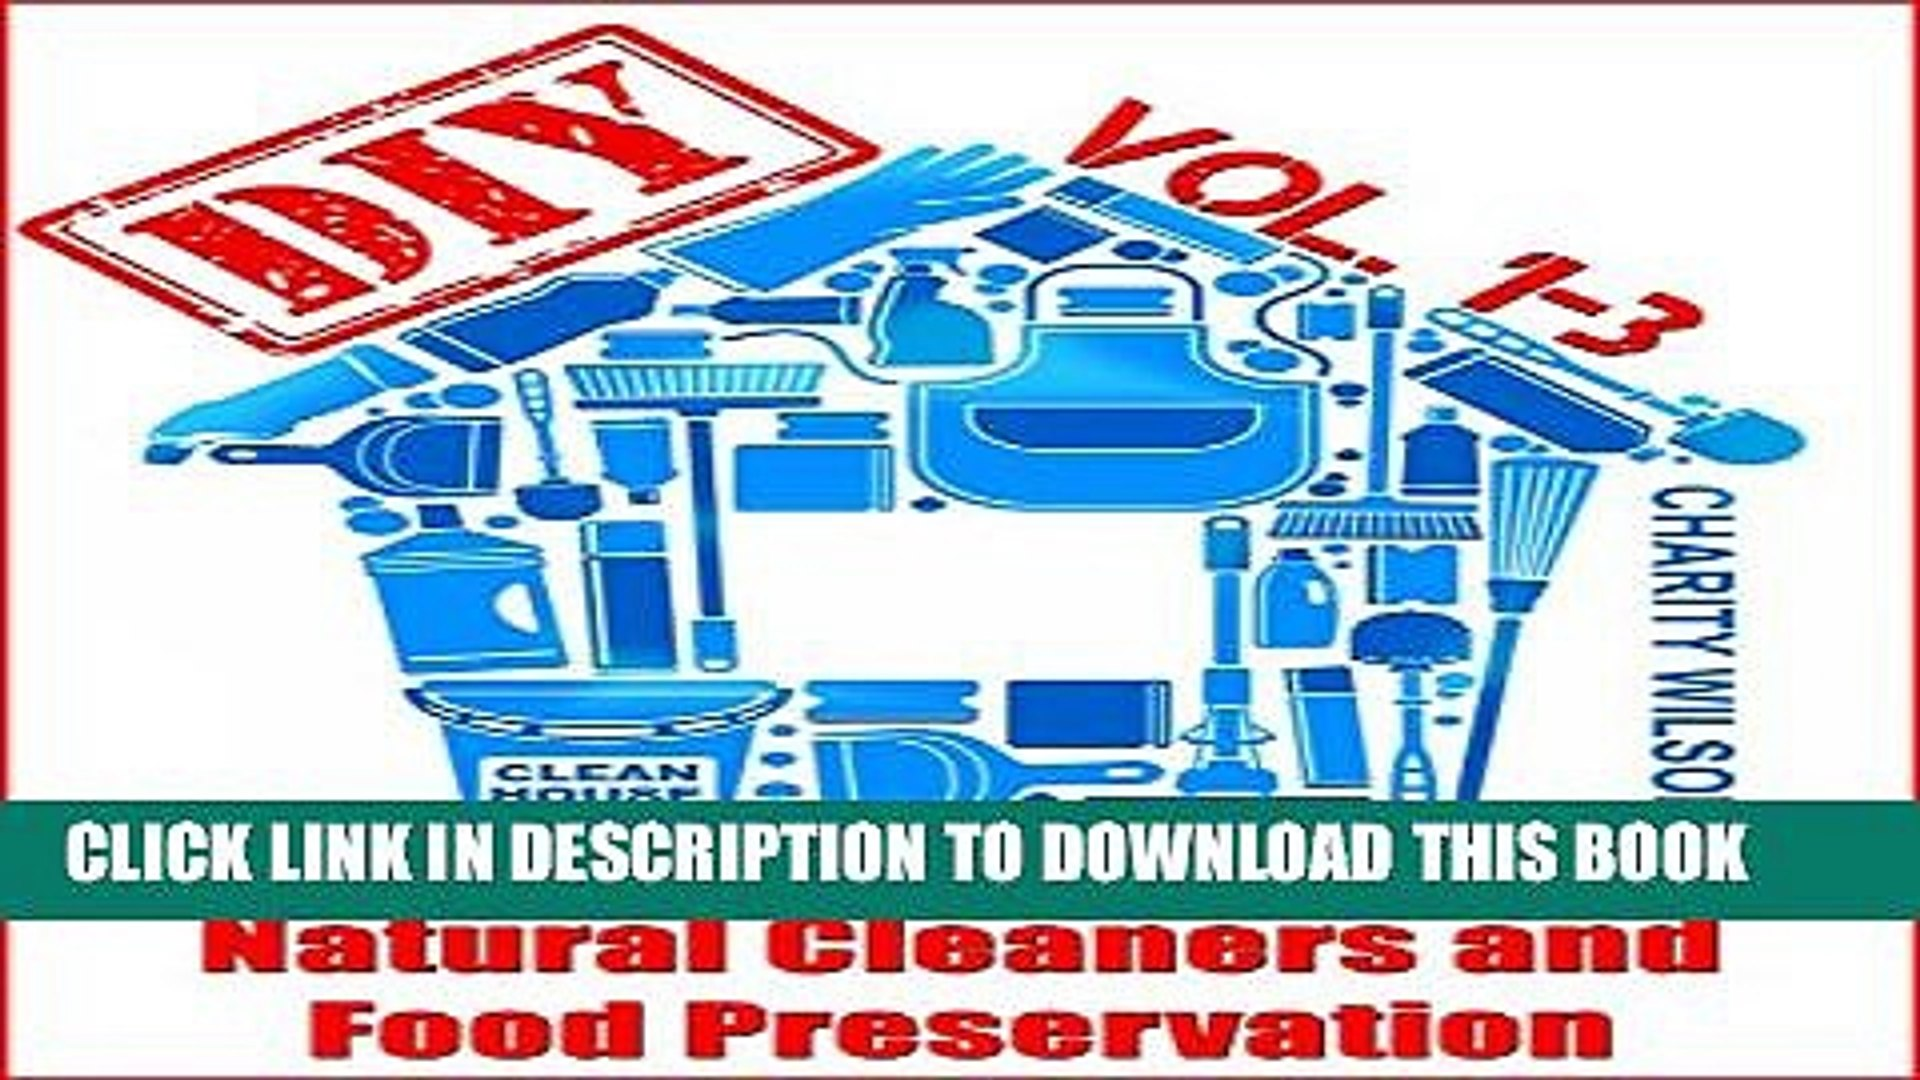 [PDF] DIY Box Set: DIY Household Hacks, Natural Cleaners and Food Preservation (DIY Hacks, Tips